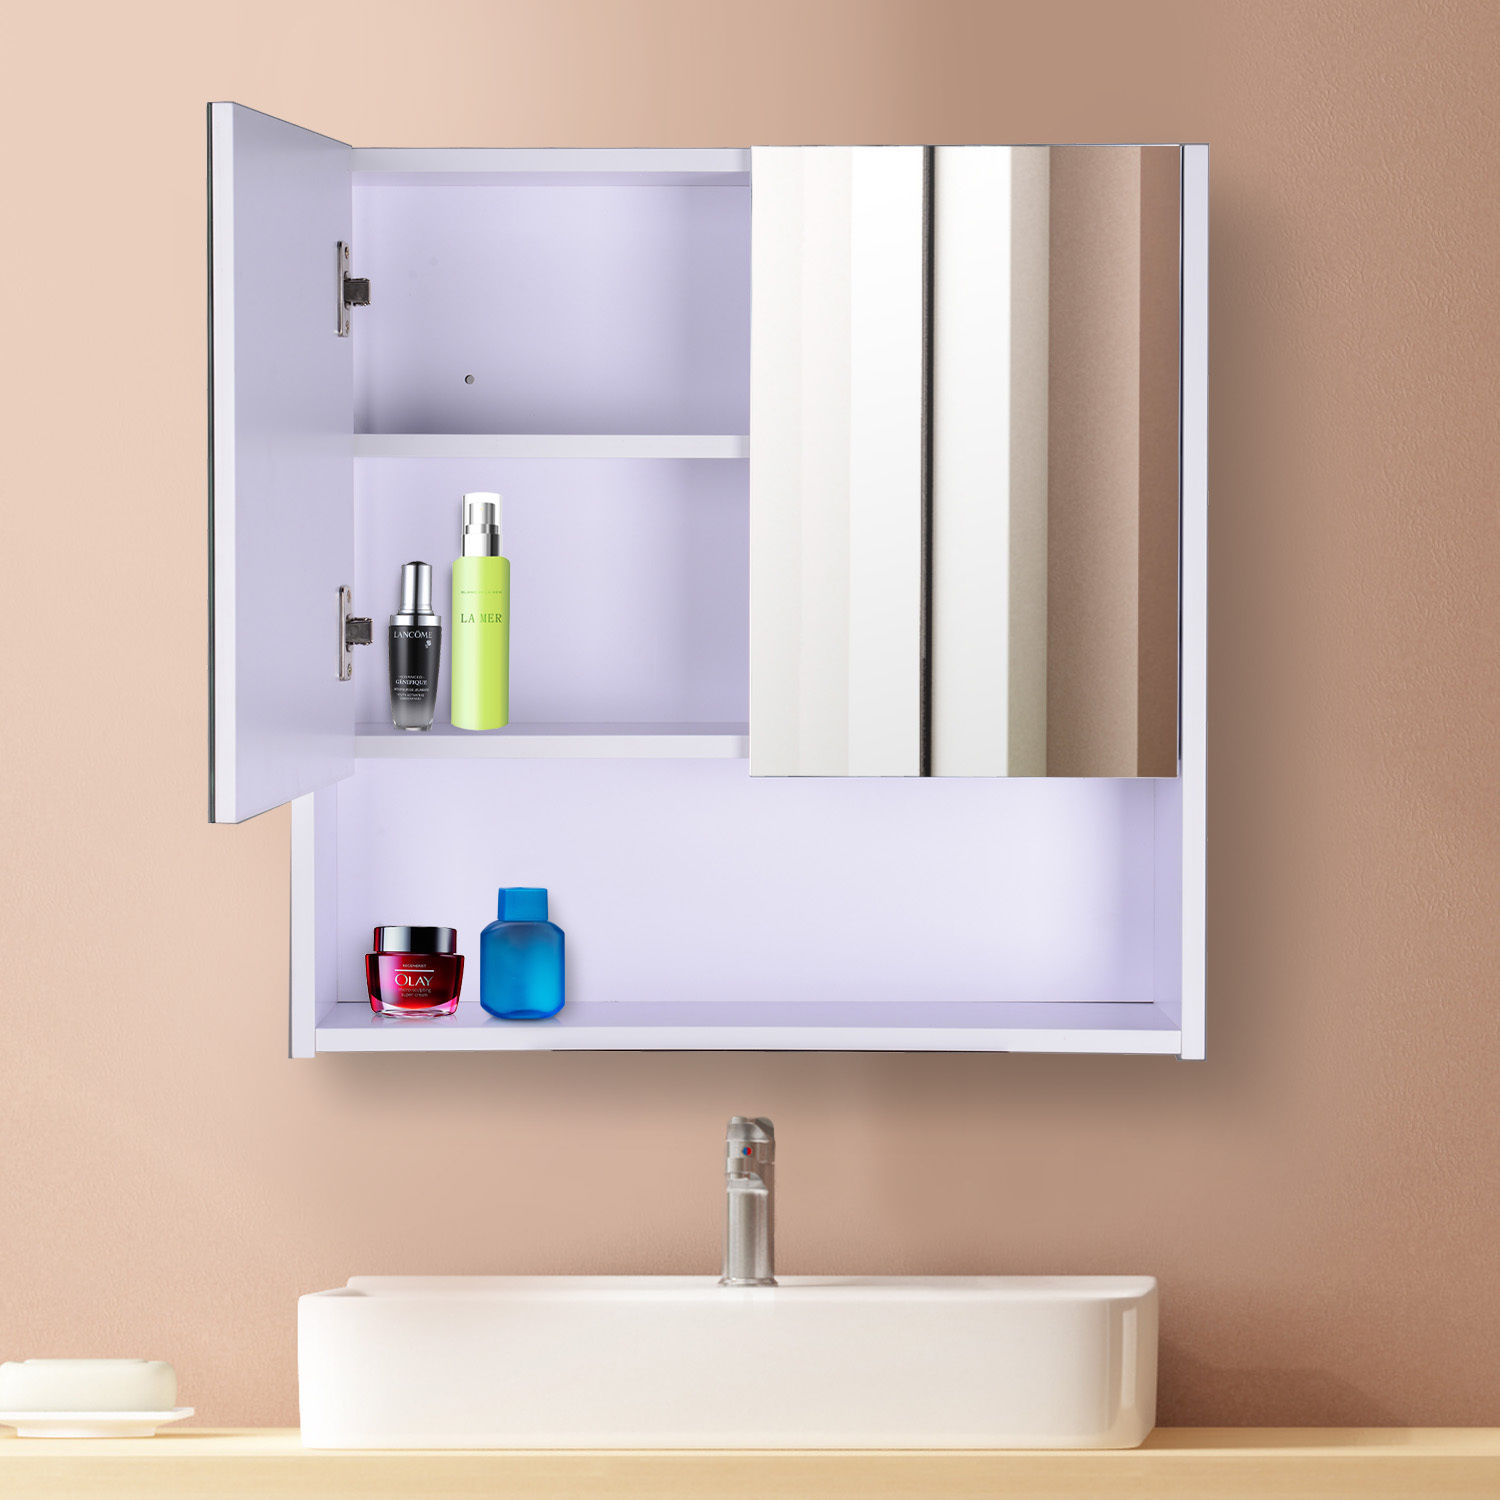 Wall mounted mirror cabinet vanity storage cupboard shelf - Wall cabinet with mirror for bathroom ...